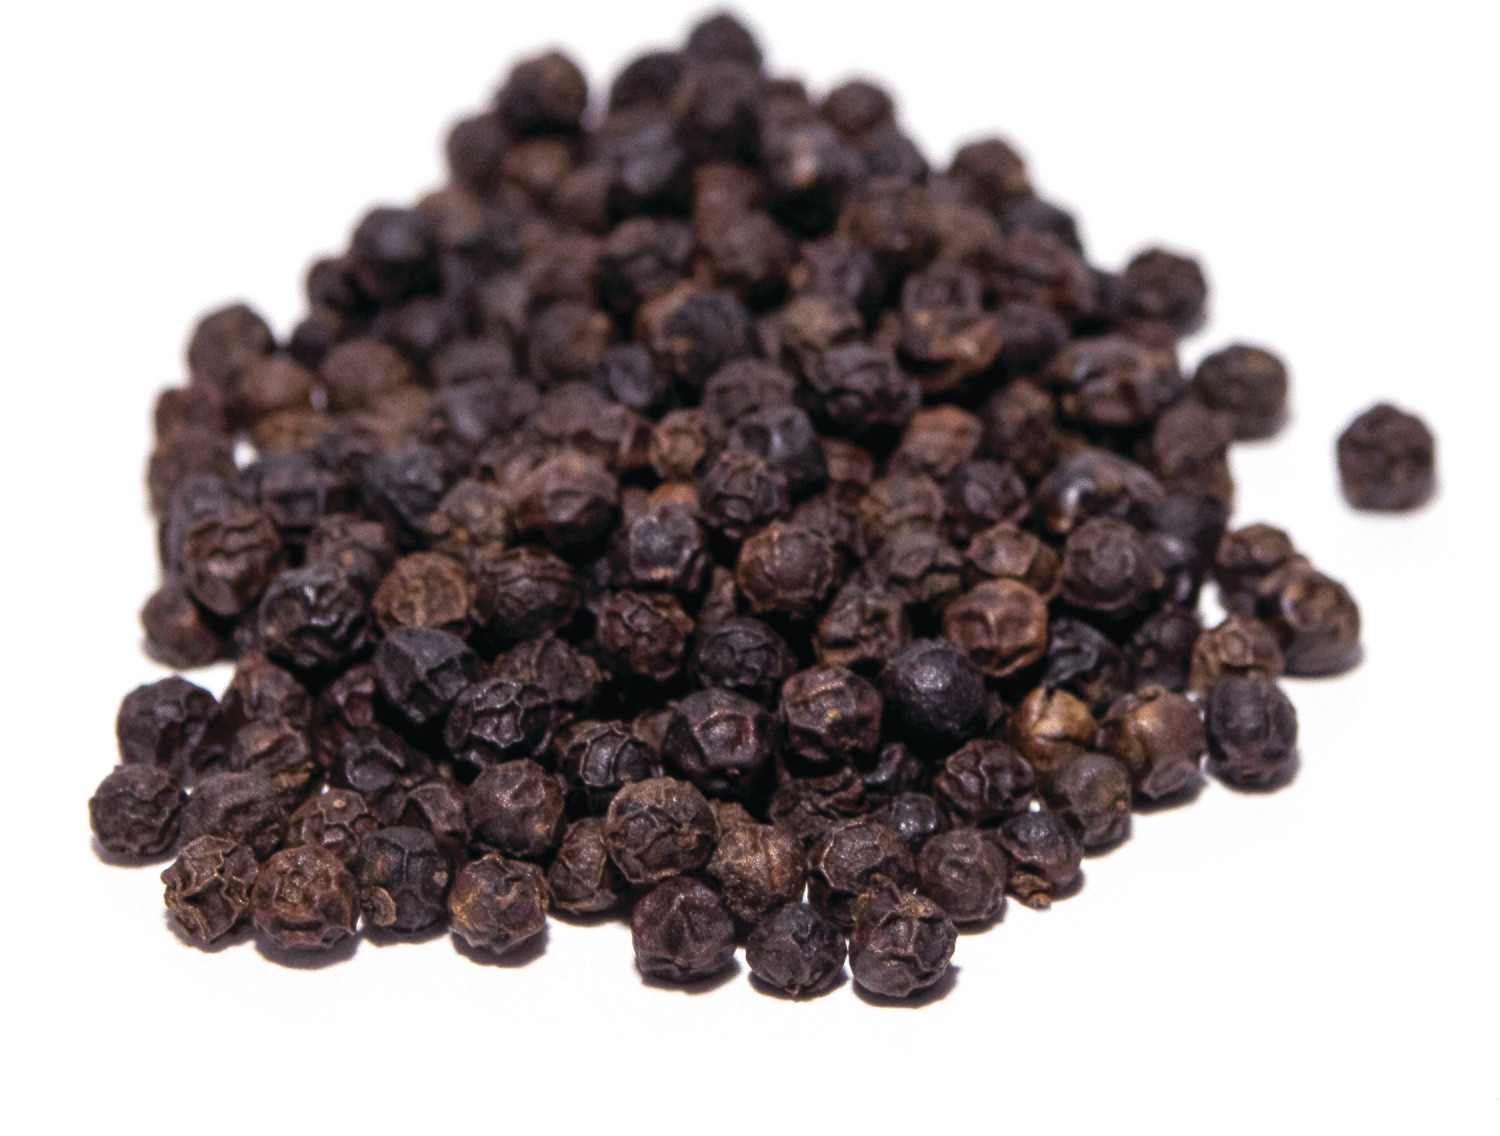 Black Ratanakiri Pepper - 16 oz (454g)